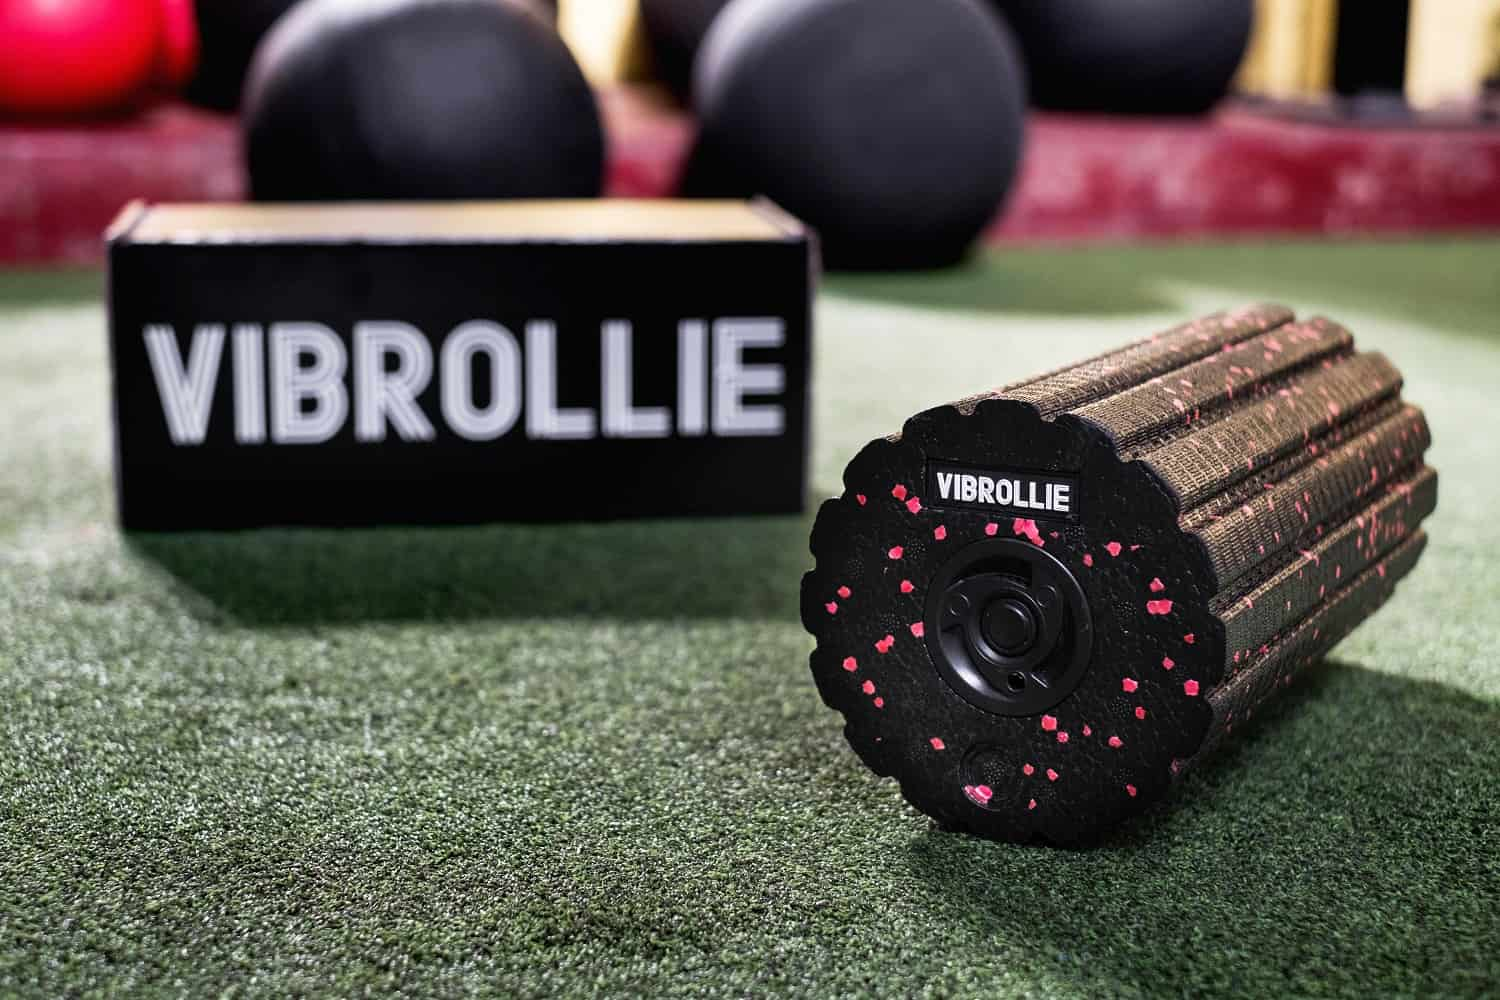 Vibrollie Foam Roller for Tight Calves